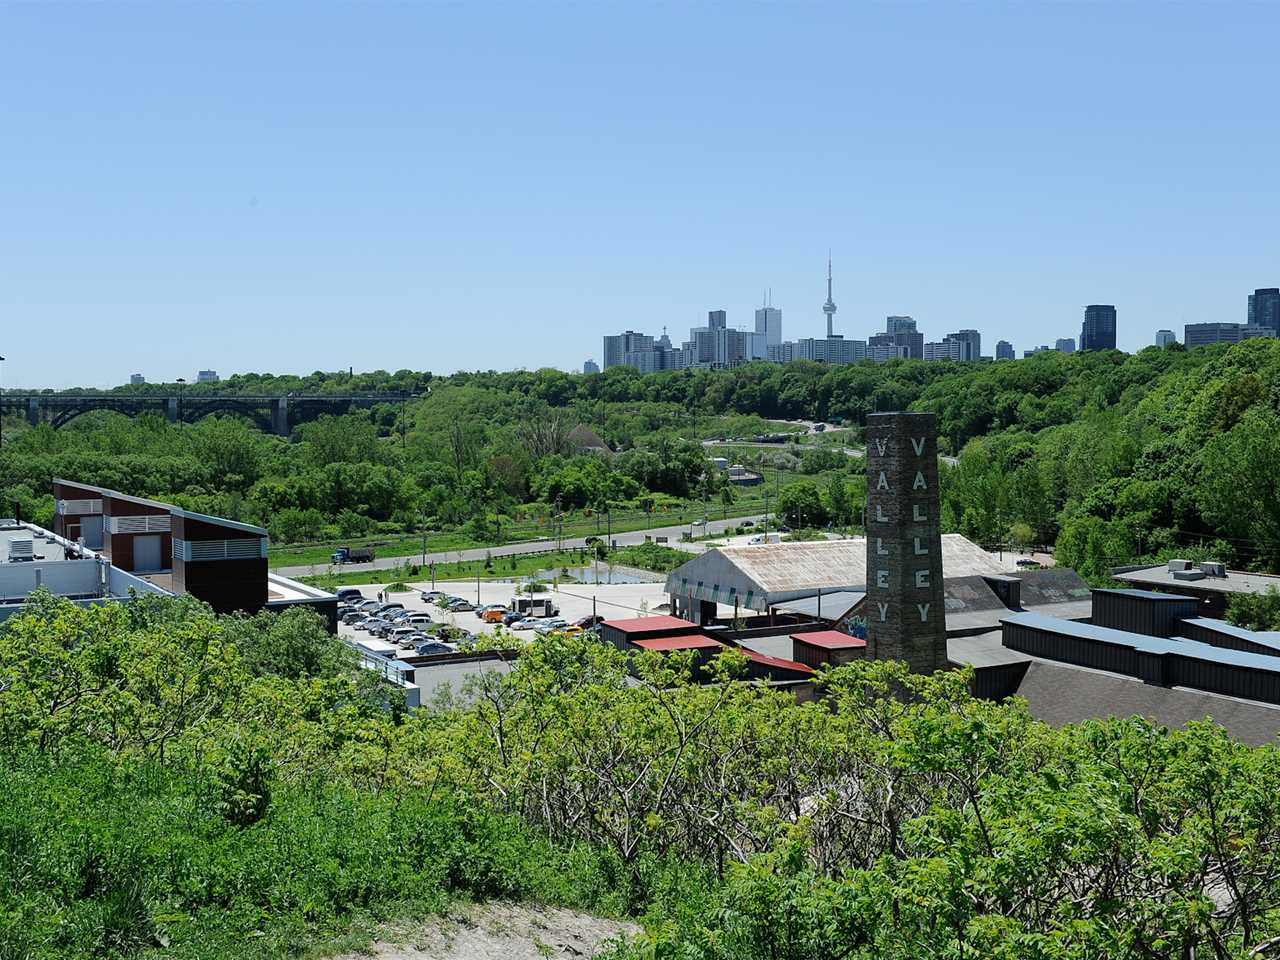 Evergreen Brick Works heritage site revitalization